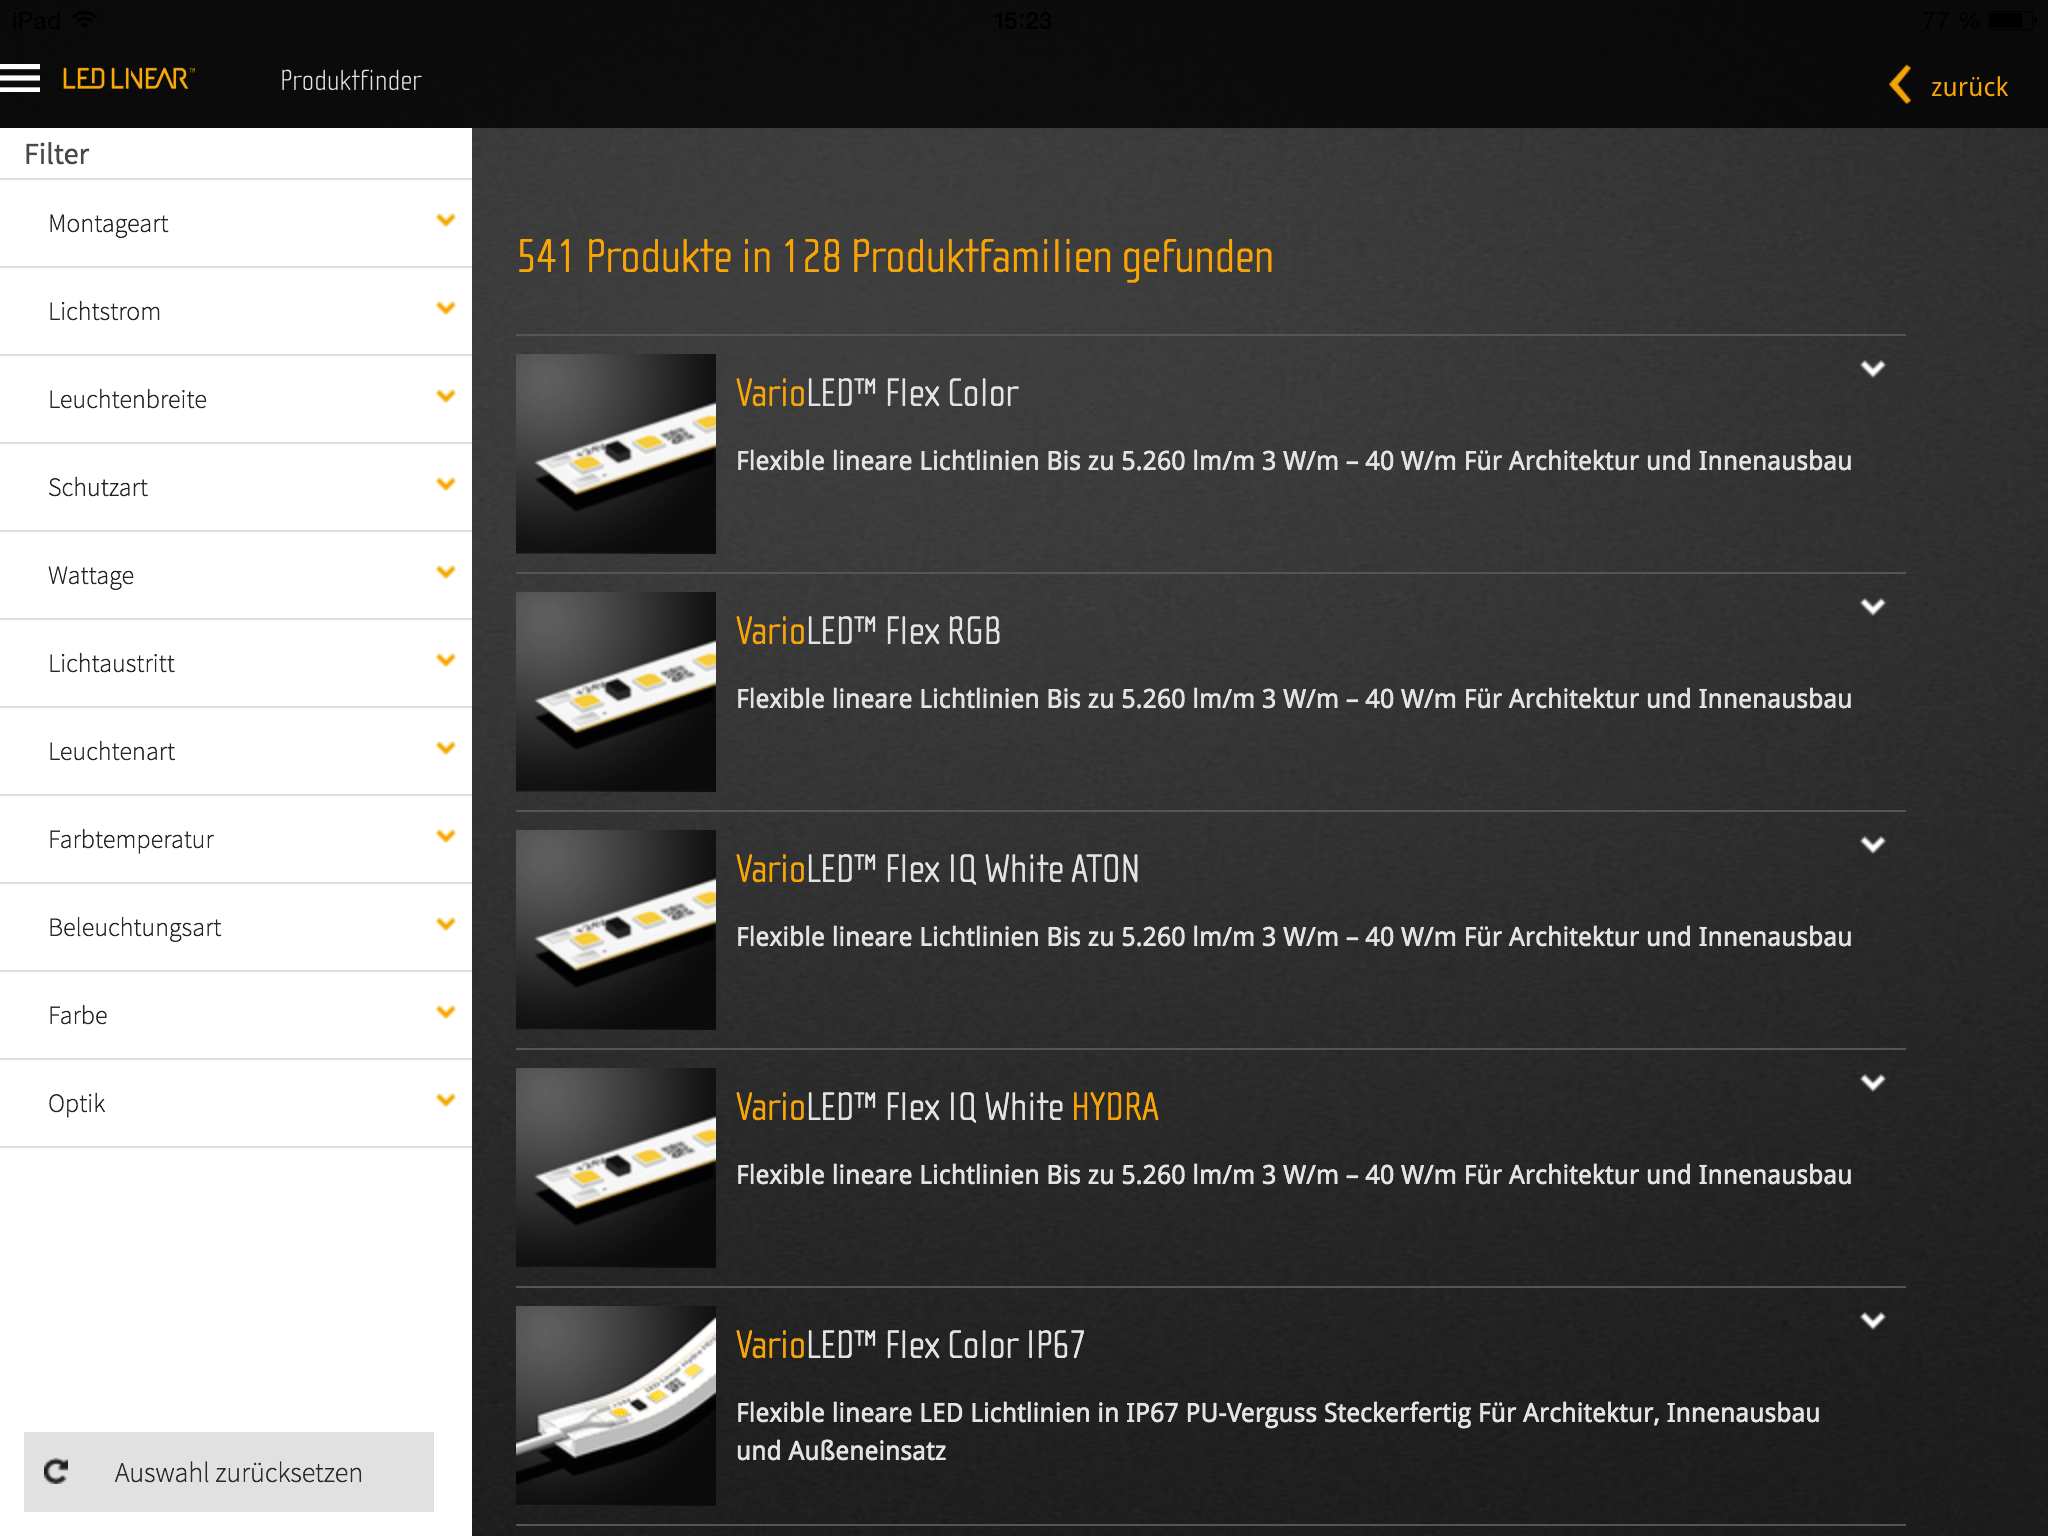 Led Farbtemperatur The Led Linear Product Configurator Now Available As Tablet App